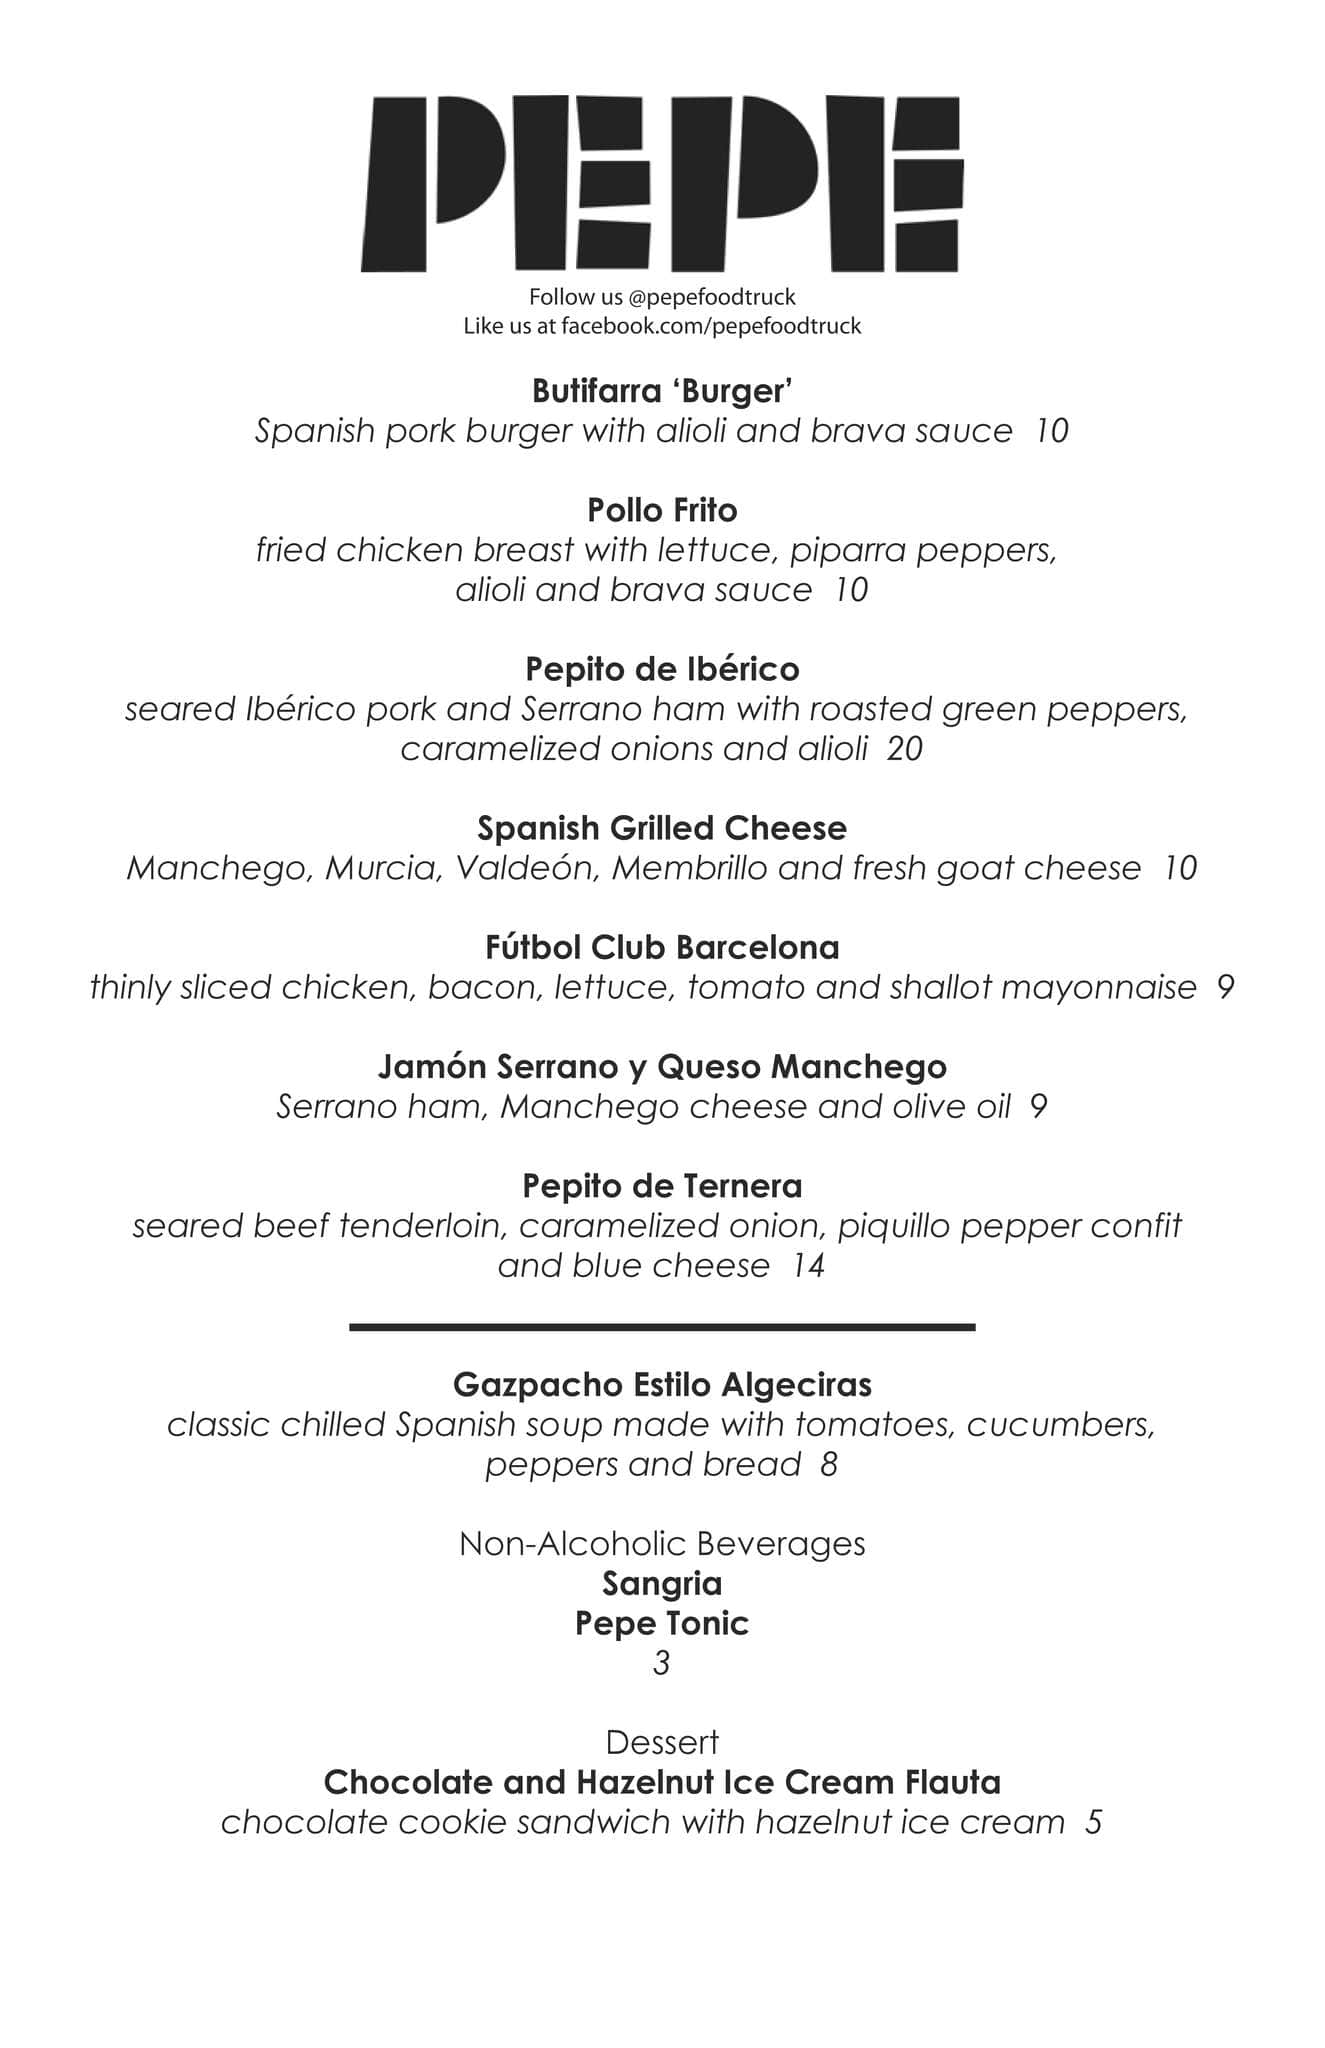 Pepe Food Truck Menu, Menu for Pepe Food Truck, Downtown, Washington Dc Food Truck Map on